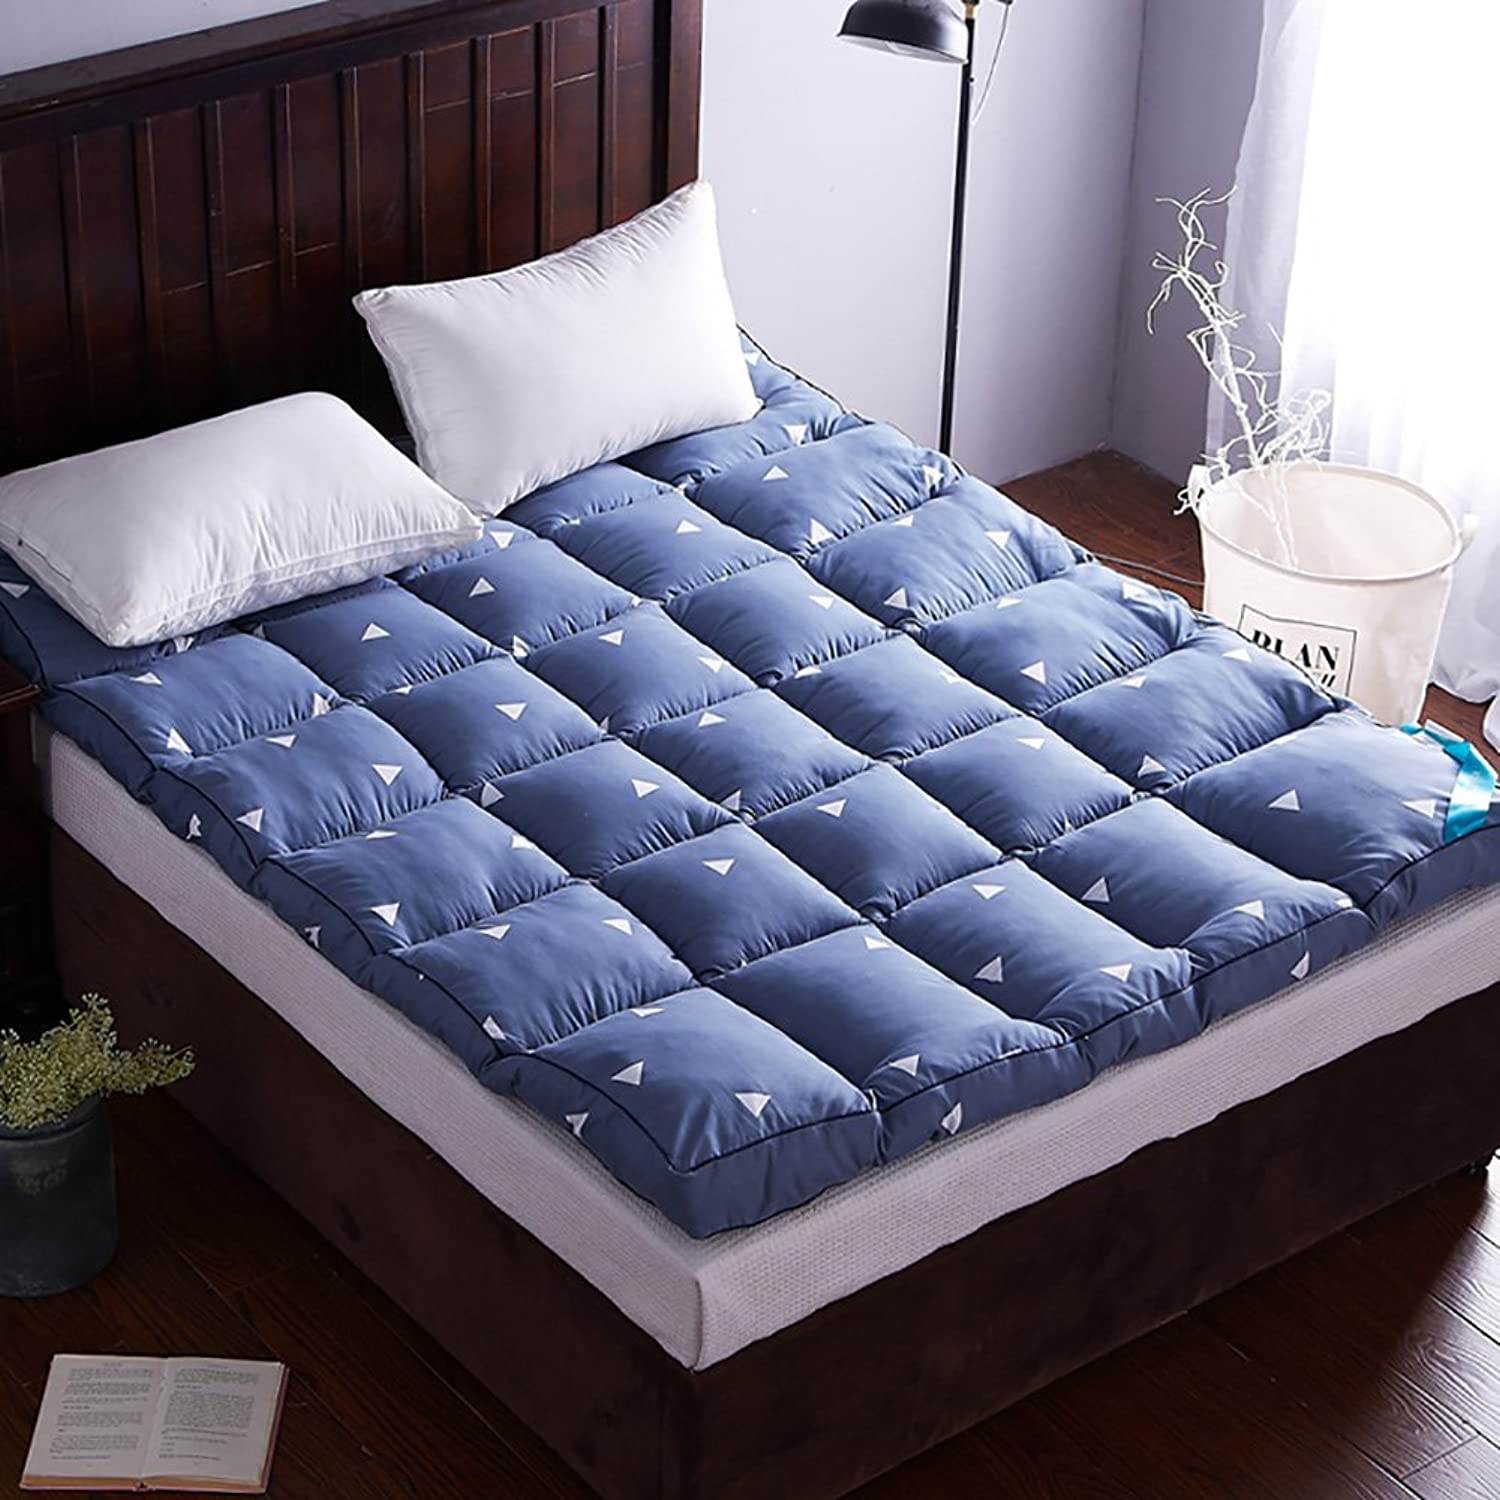 DULPLAY Non-Slip Tatami Foldable Mattress beds,Mattress Breathable Bed Cover,10cm thickn Warm Double Student Mattress Predectors -bluee 150x200cm(59x79inch)